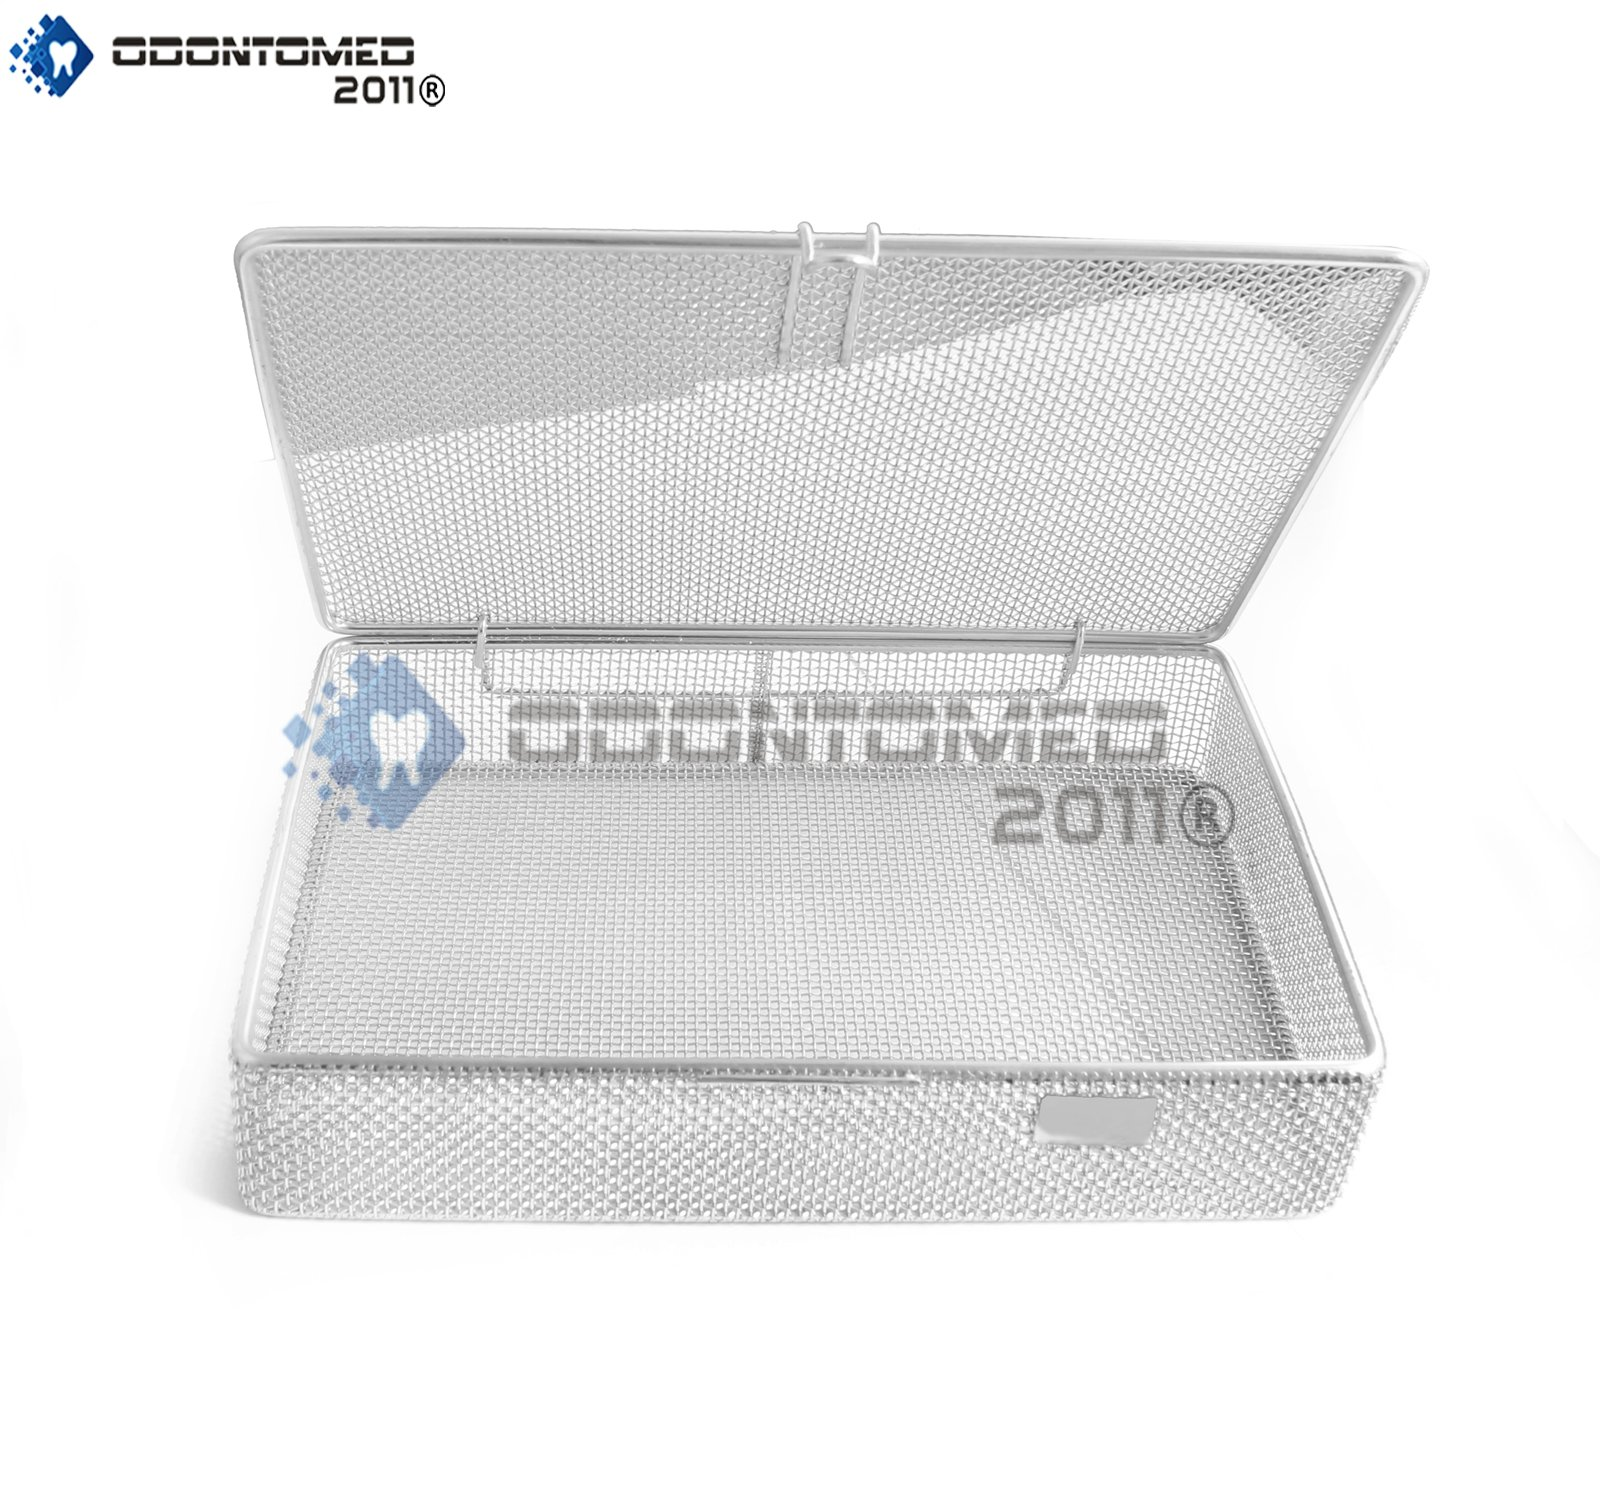 OdontoMed2011 INSTRUMENT TRAY AND MESH PERFORATED BASKETS STERILIZATION TRAY 9'' X 6.25'' X 1.5'' WITH LID STAINLESS STEEL, OD2011-DN-313